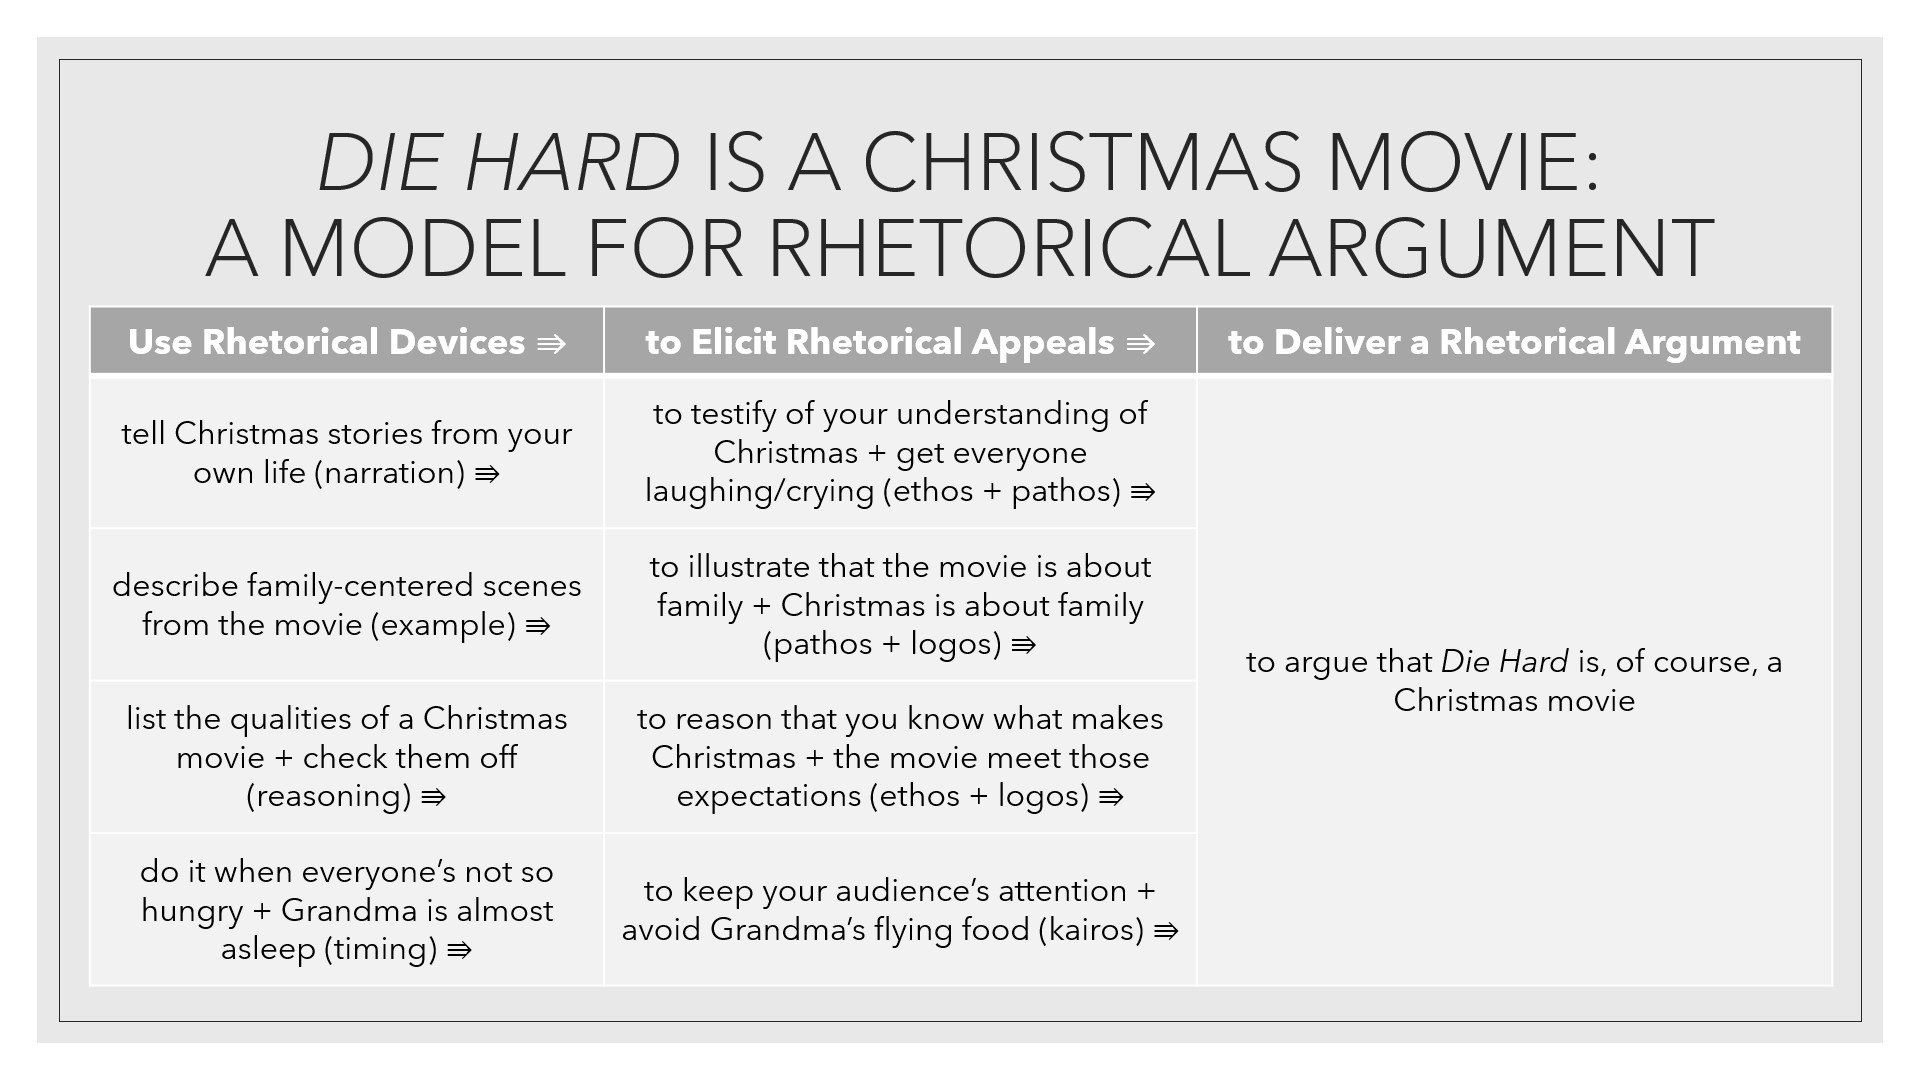 Die Hard is a Christmas movie as a model for rhetorical argument: tell your own Christmas stories (narration) to testify of your understanding of Christmas + get everyone laughing/crying (ethos + pathos), describe family-centered scenes from the movie to illustrate that it's about family + Christmas is about family (pathos + logos), list qualities of a Christmas movie to reason the movie meets those expectations (logos)